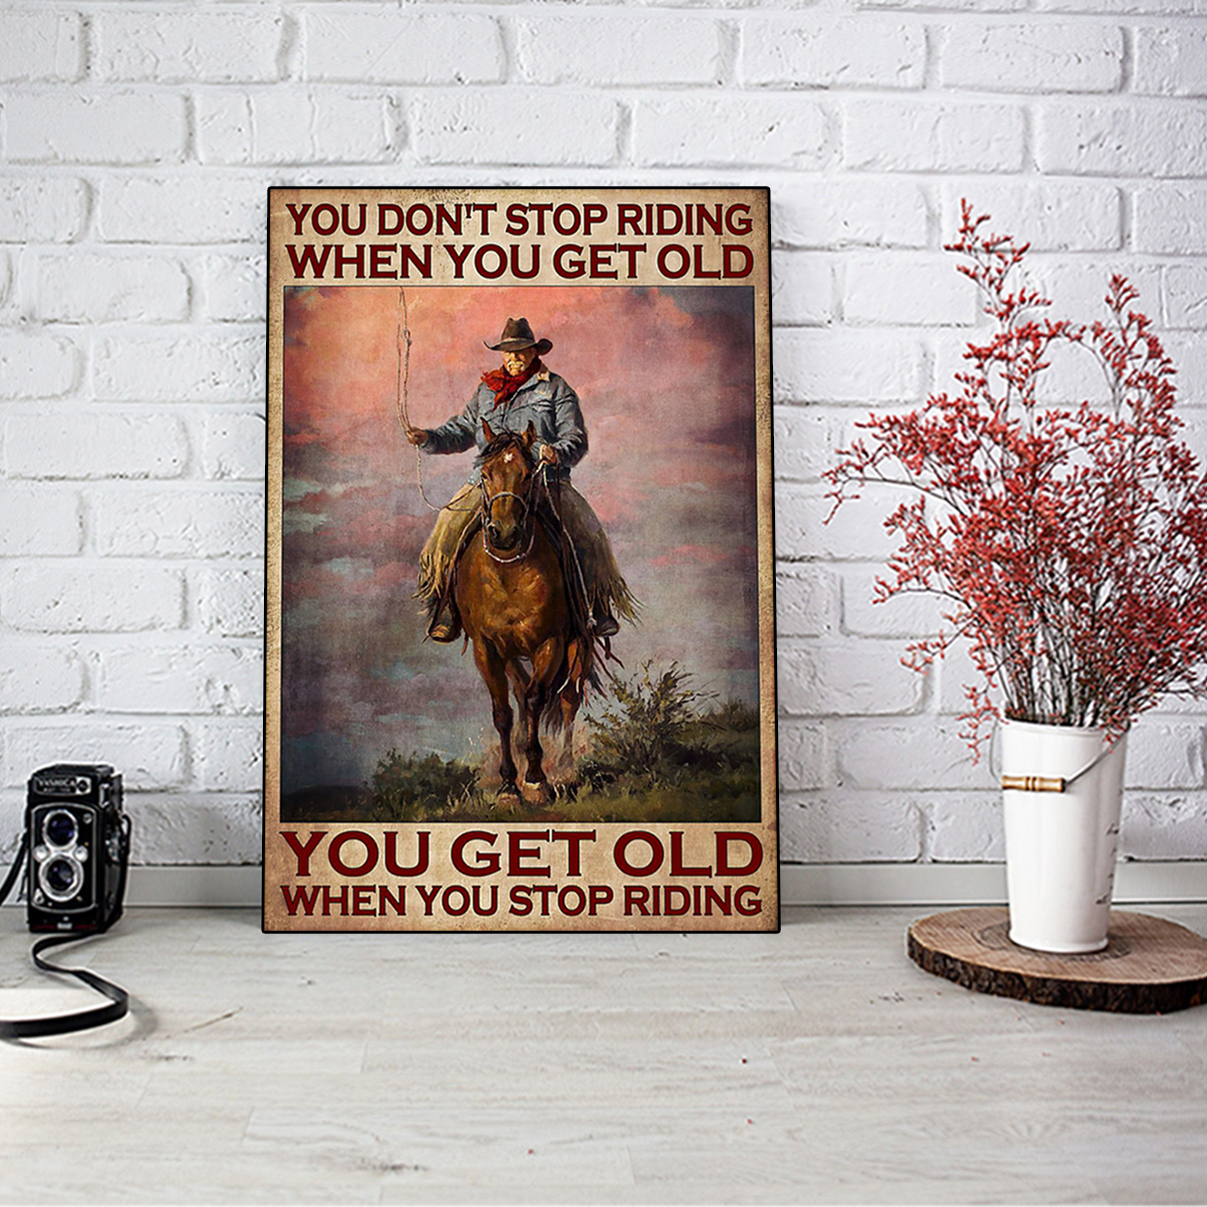 Old man cowboy you don't stop riding when you get old poster A1